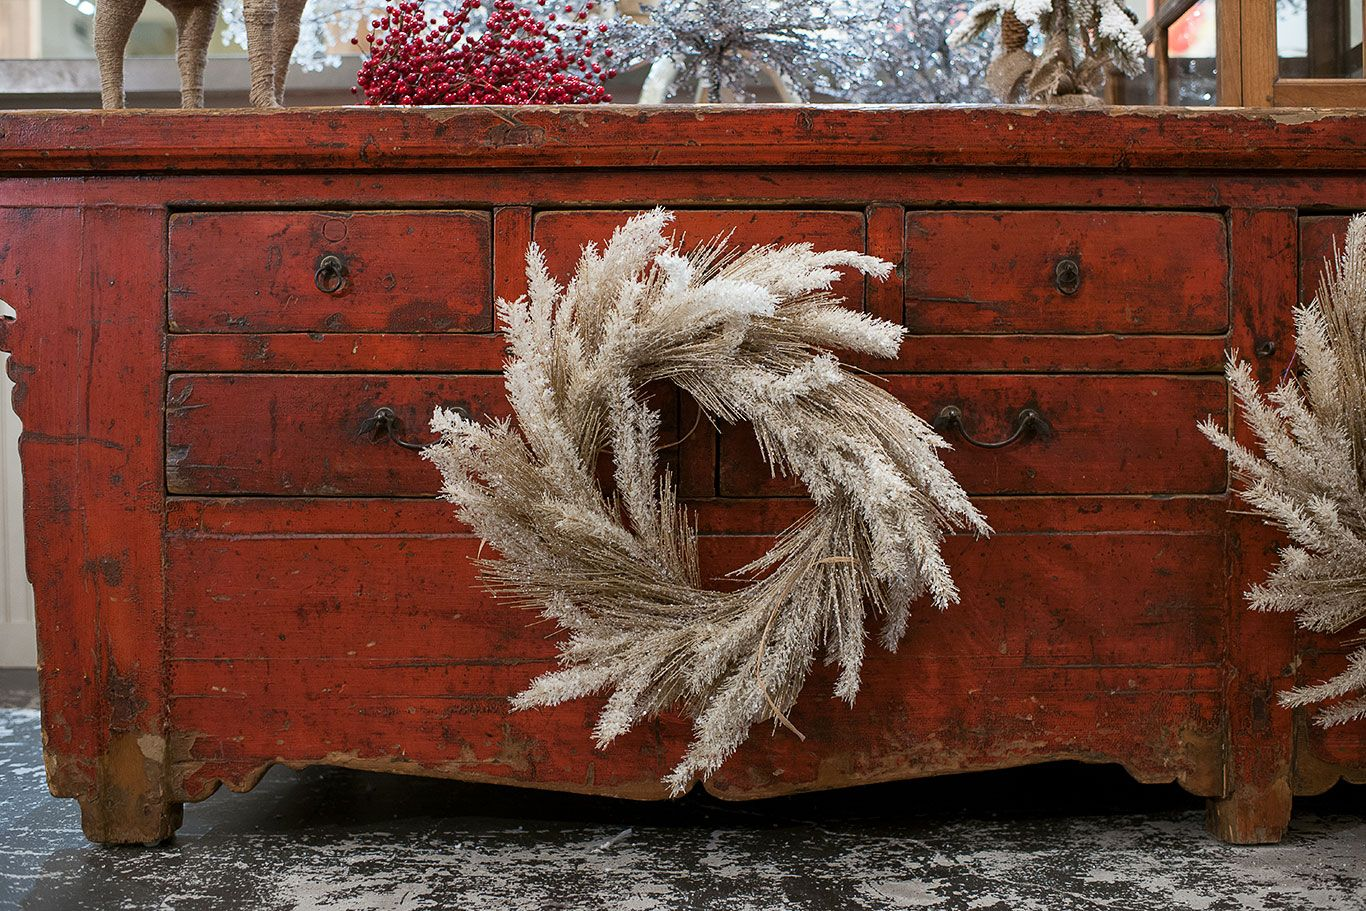 Winter wreath to enhance Mecox Houston dresser display #interiordesign #home #decor #design #holiday